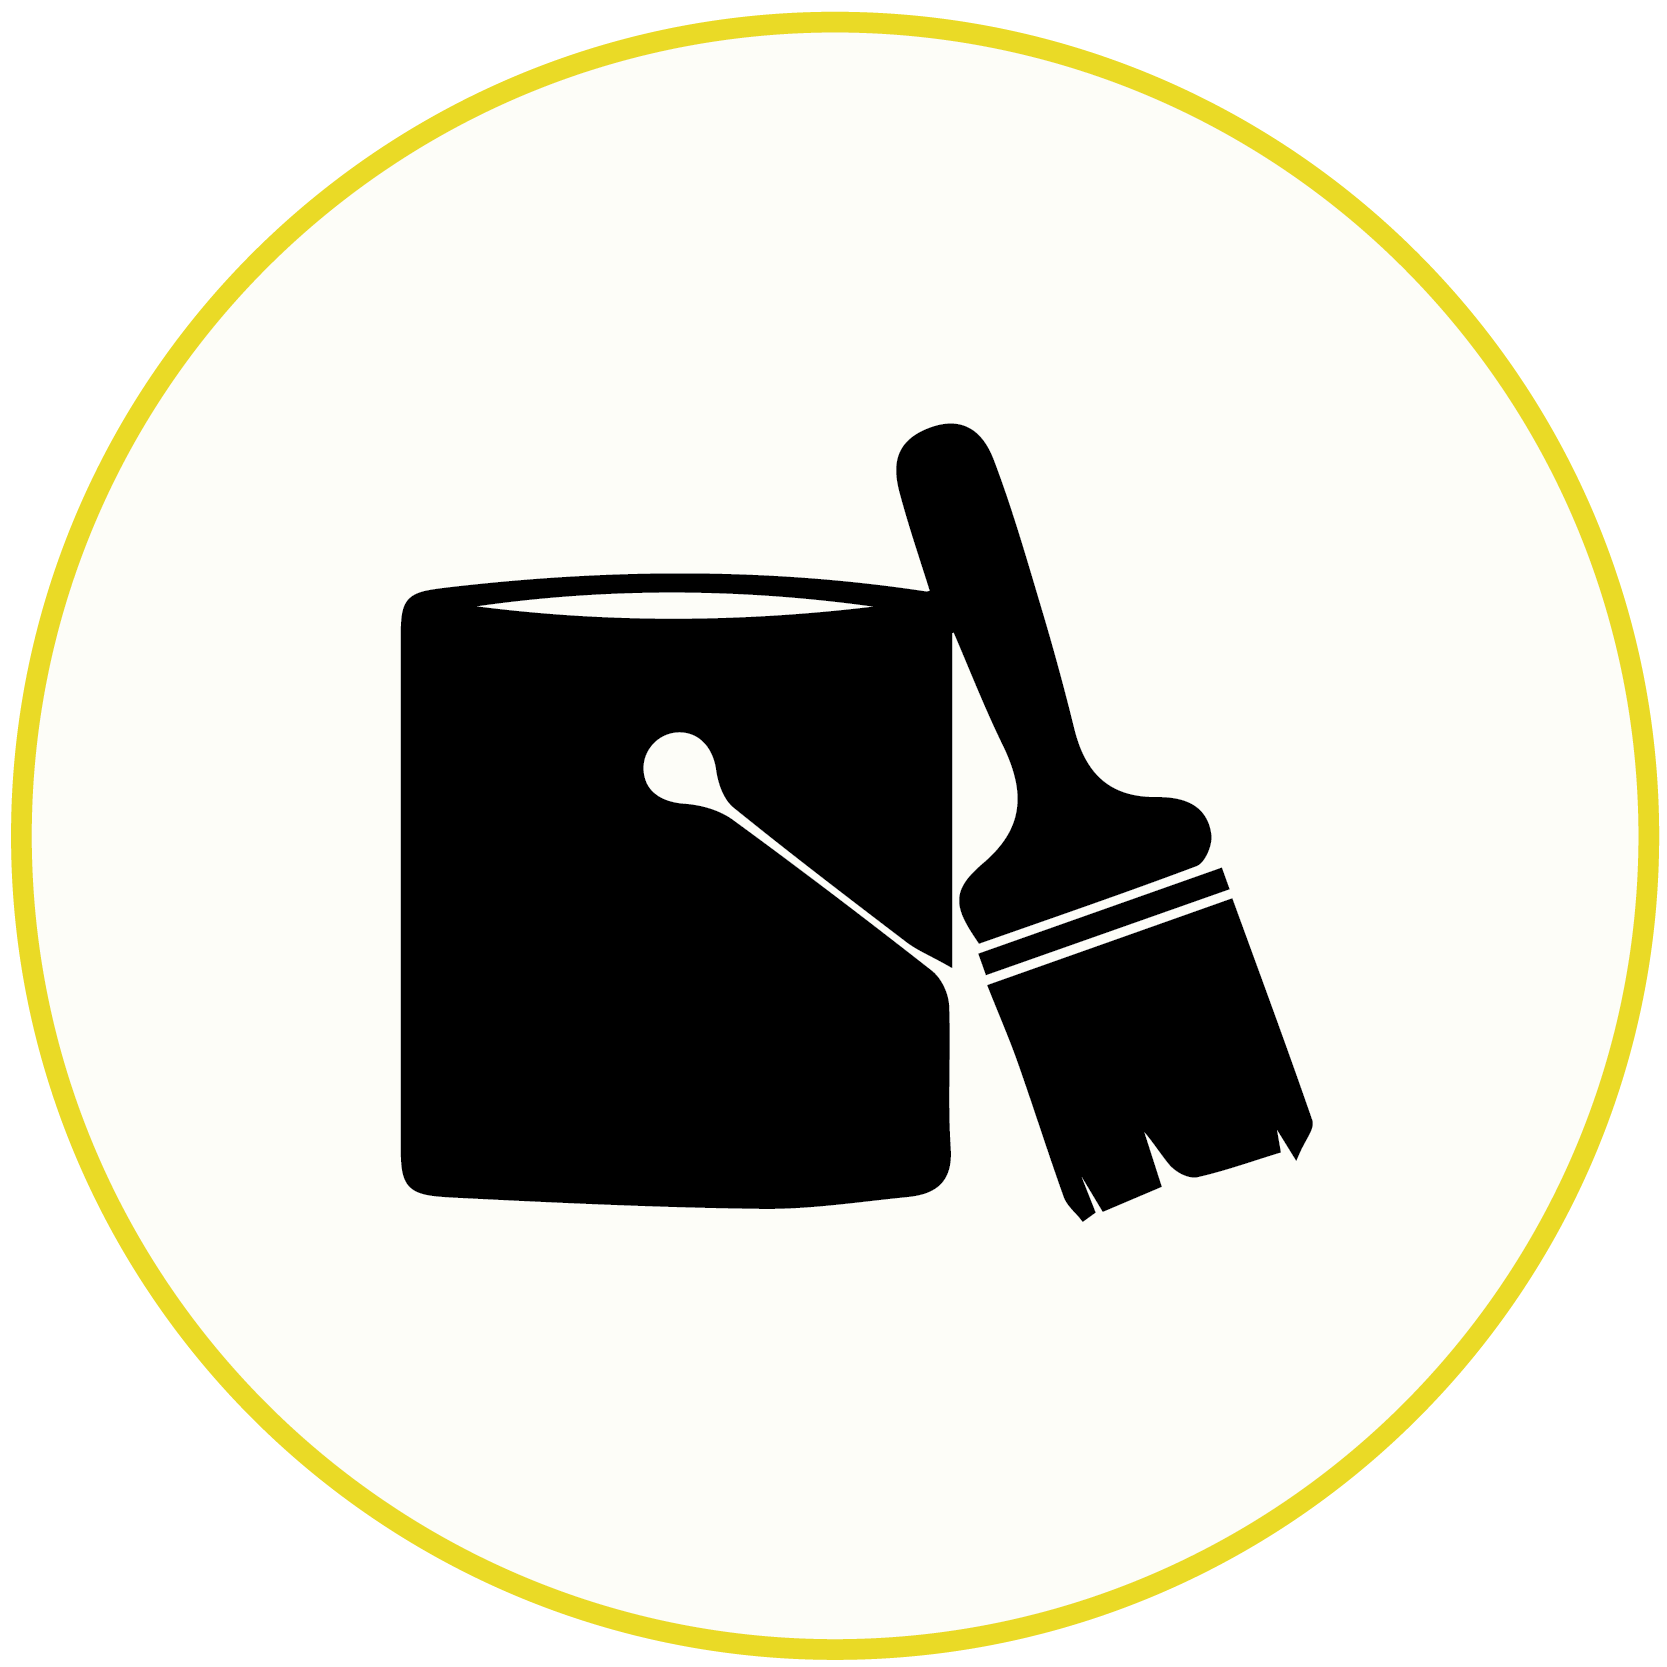 icon of a paint sample pint with a brush